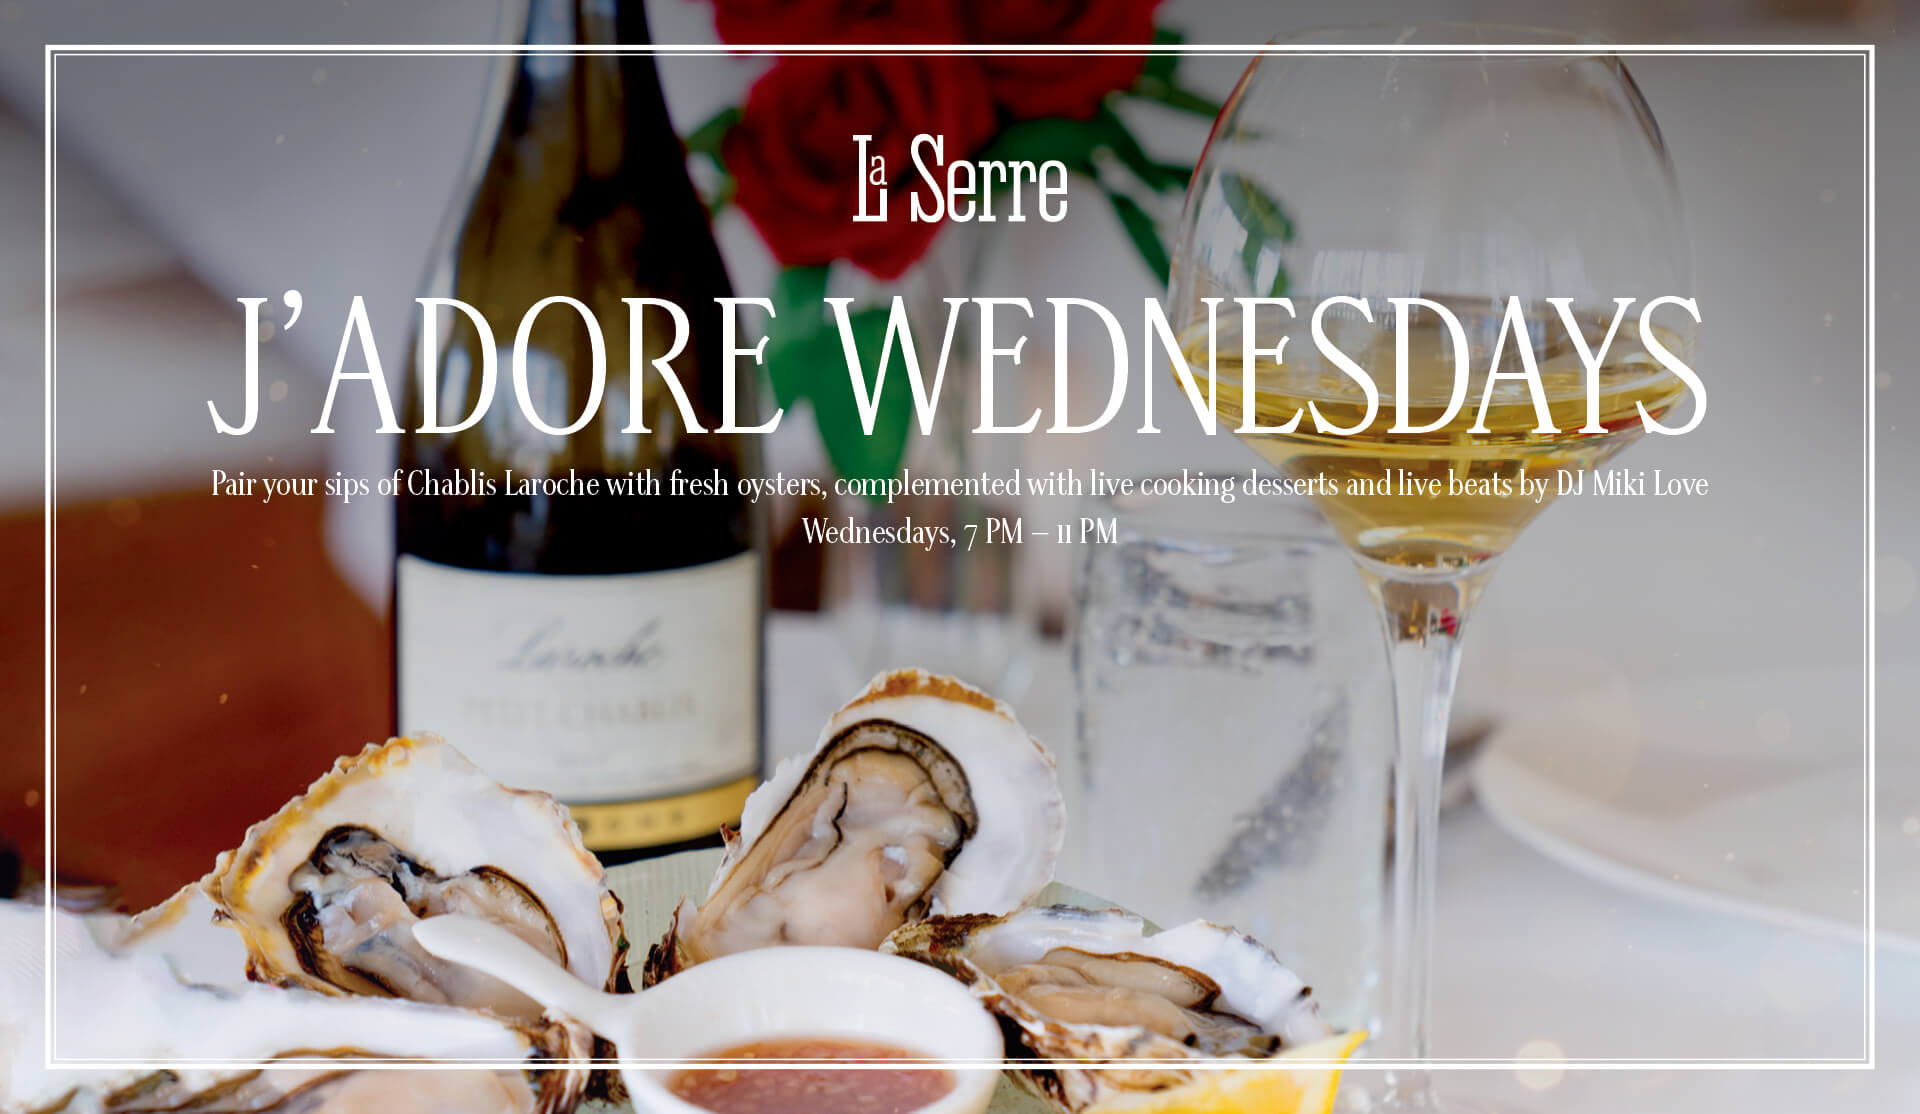 Jadore Wednesdays - La Serre Dubai